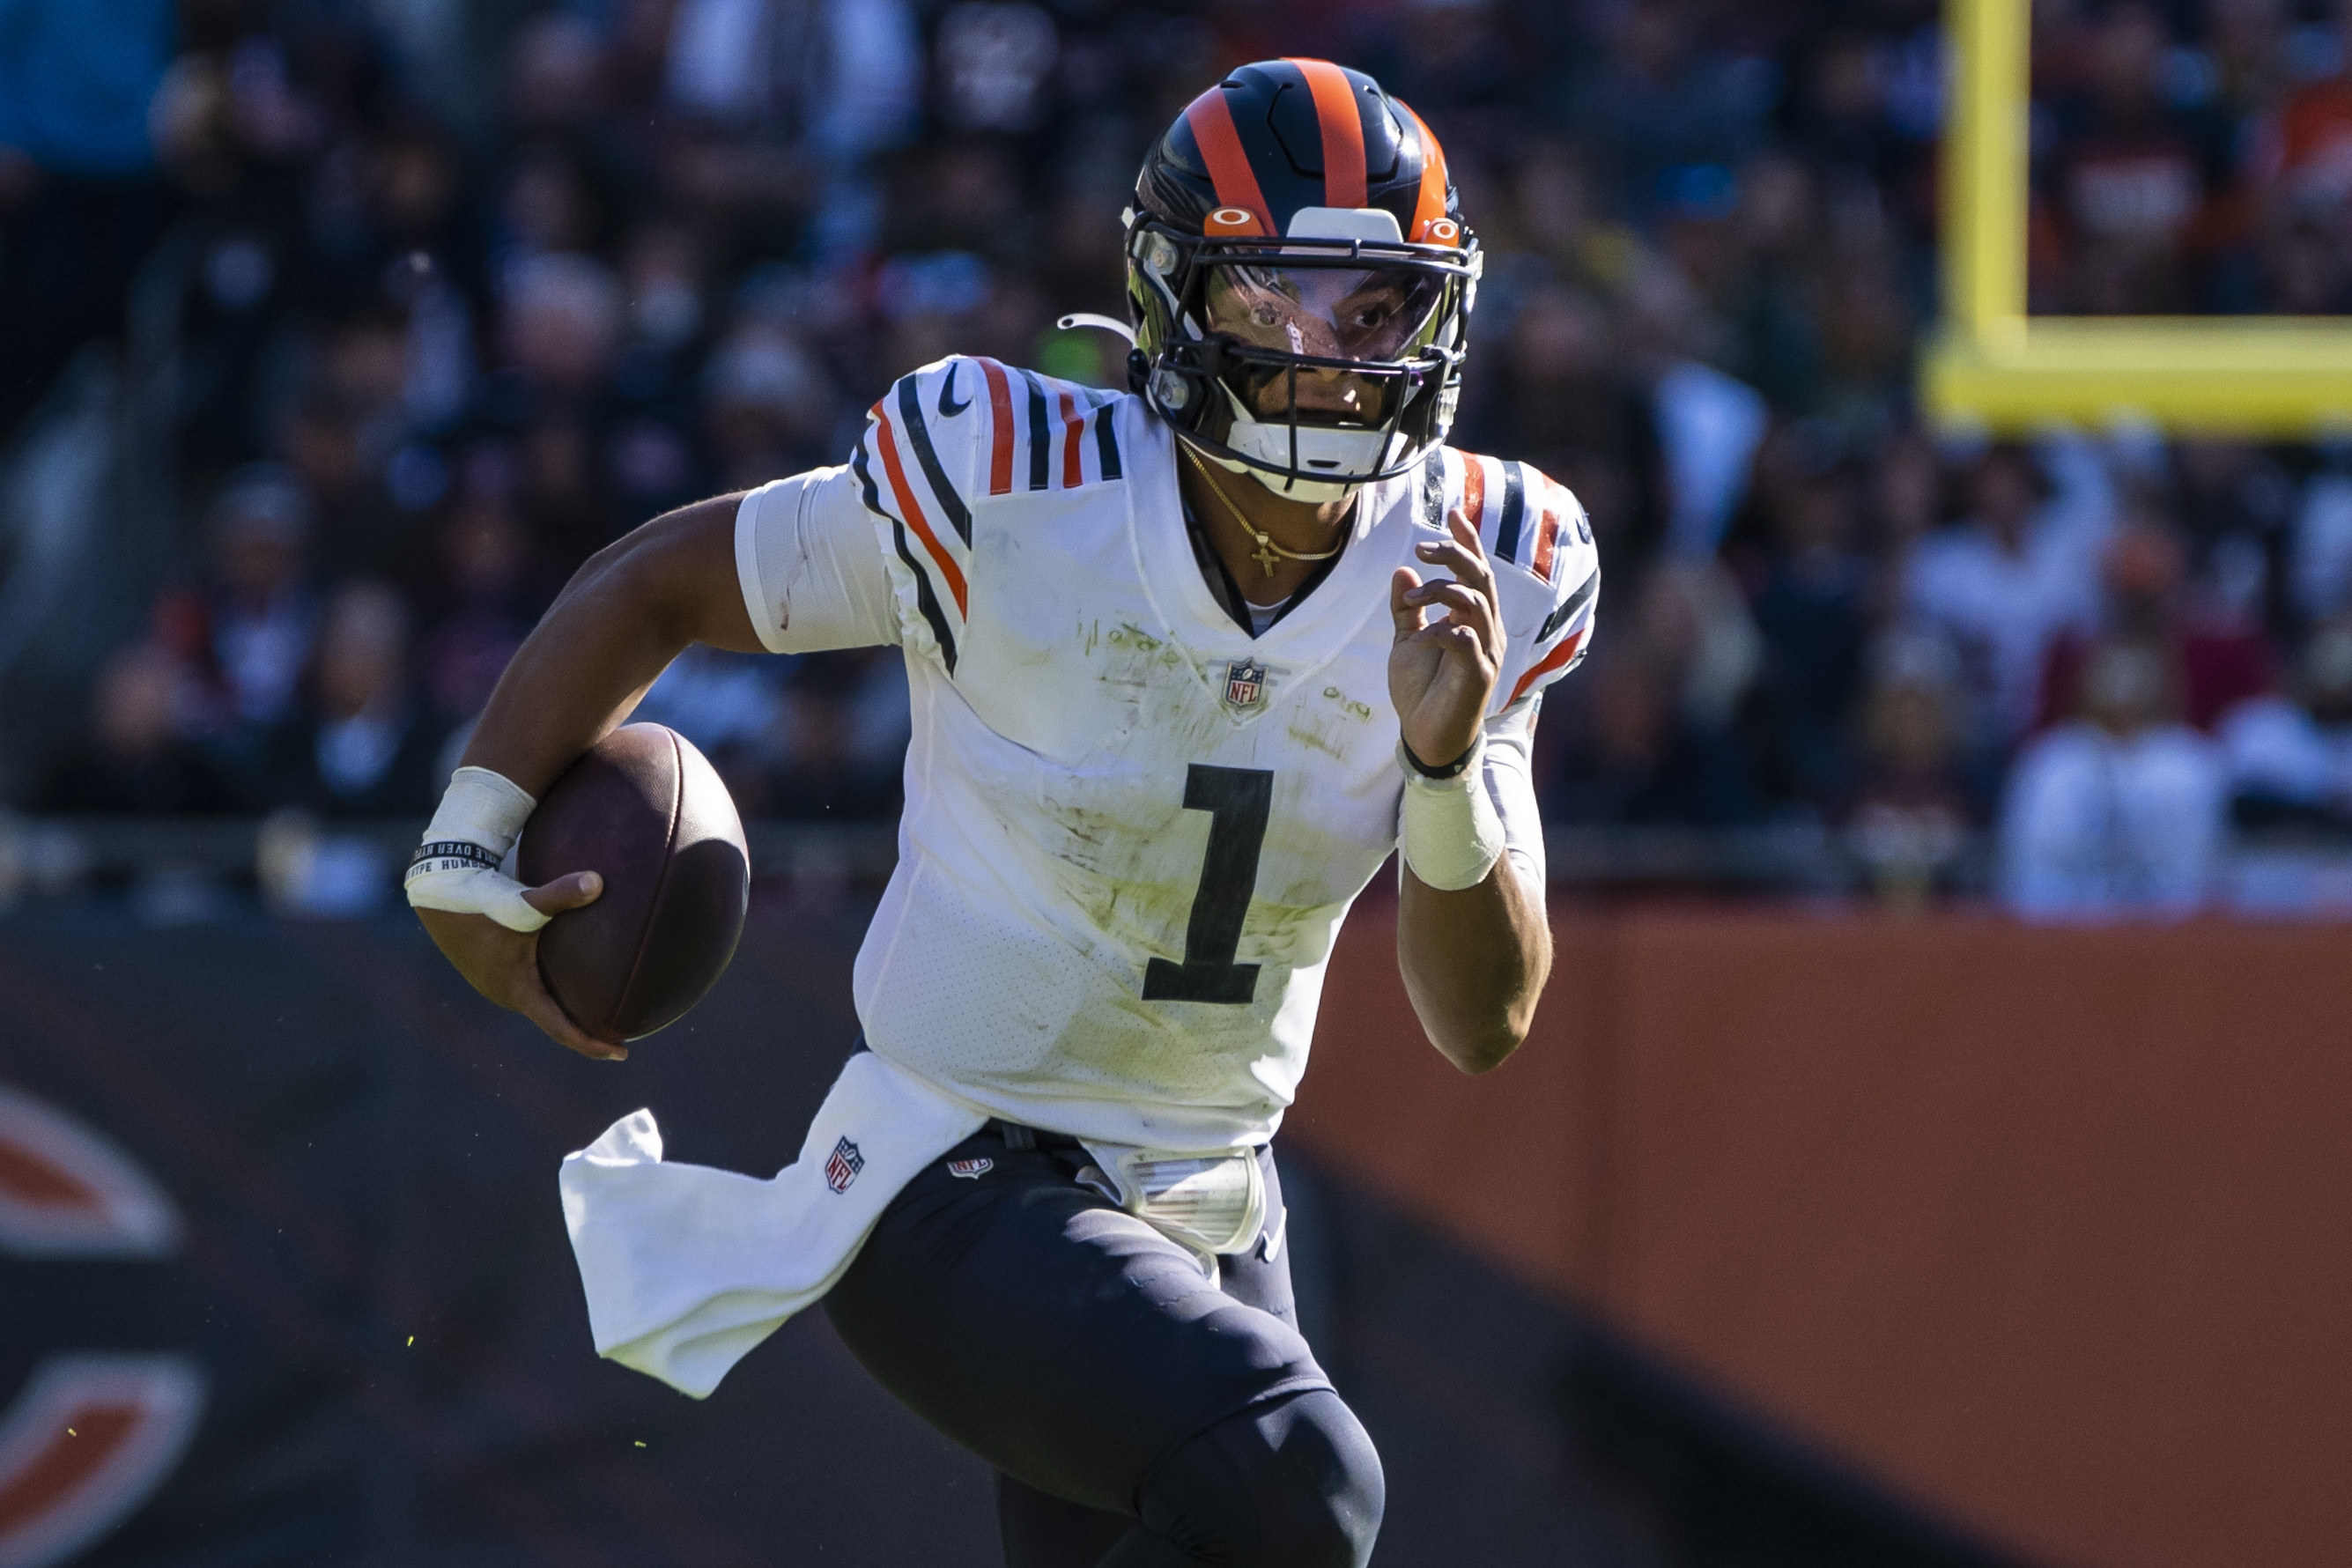 Bears quarterback Justin Fields runs against the Packers on Sunday.